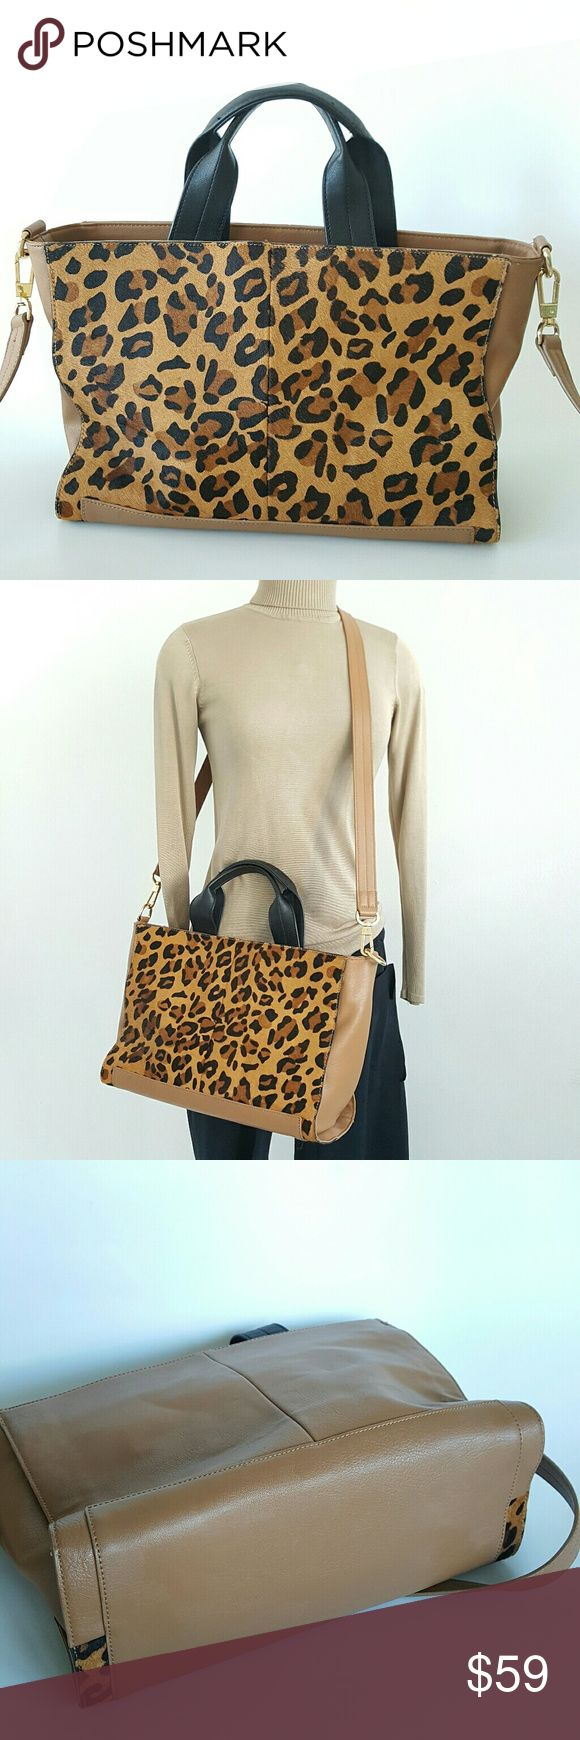 """French Connection Cow Hair Fur Tote/Crossbody Perfect for shopping or work,  will fit perfectly computer,  accents of cow hair fur with leopard print,  back is 84% of PU,  lining cotton navy blue. Magnetic snap closure, interior zip pocket and two additional pockets for cell phone and key. Excellent condition, very clean interior. Dimensions are 15"""" x 5"""" x 9"""" French Connection Bags Totes"""